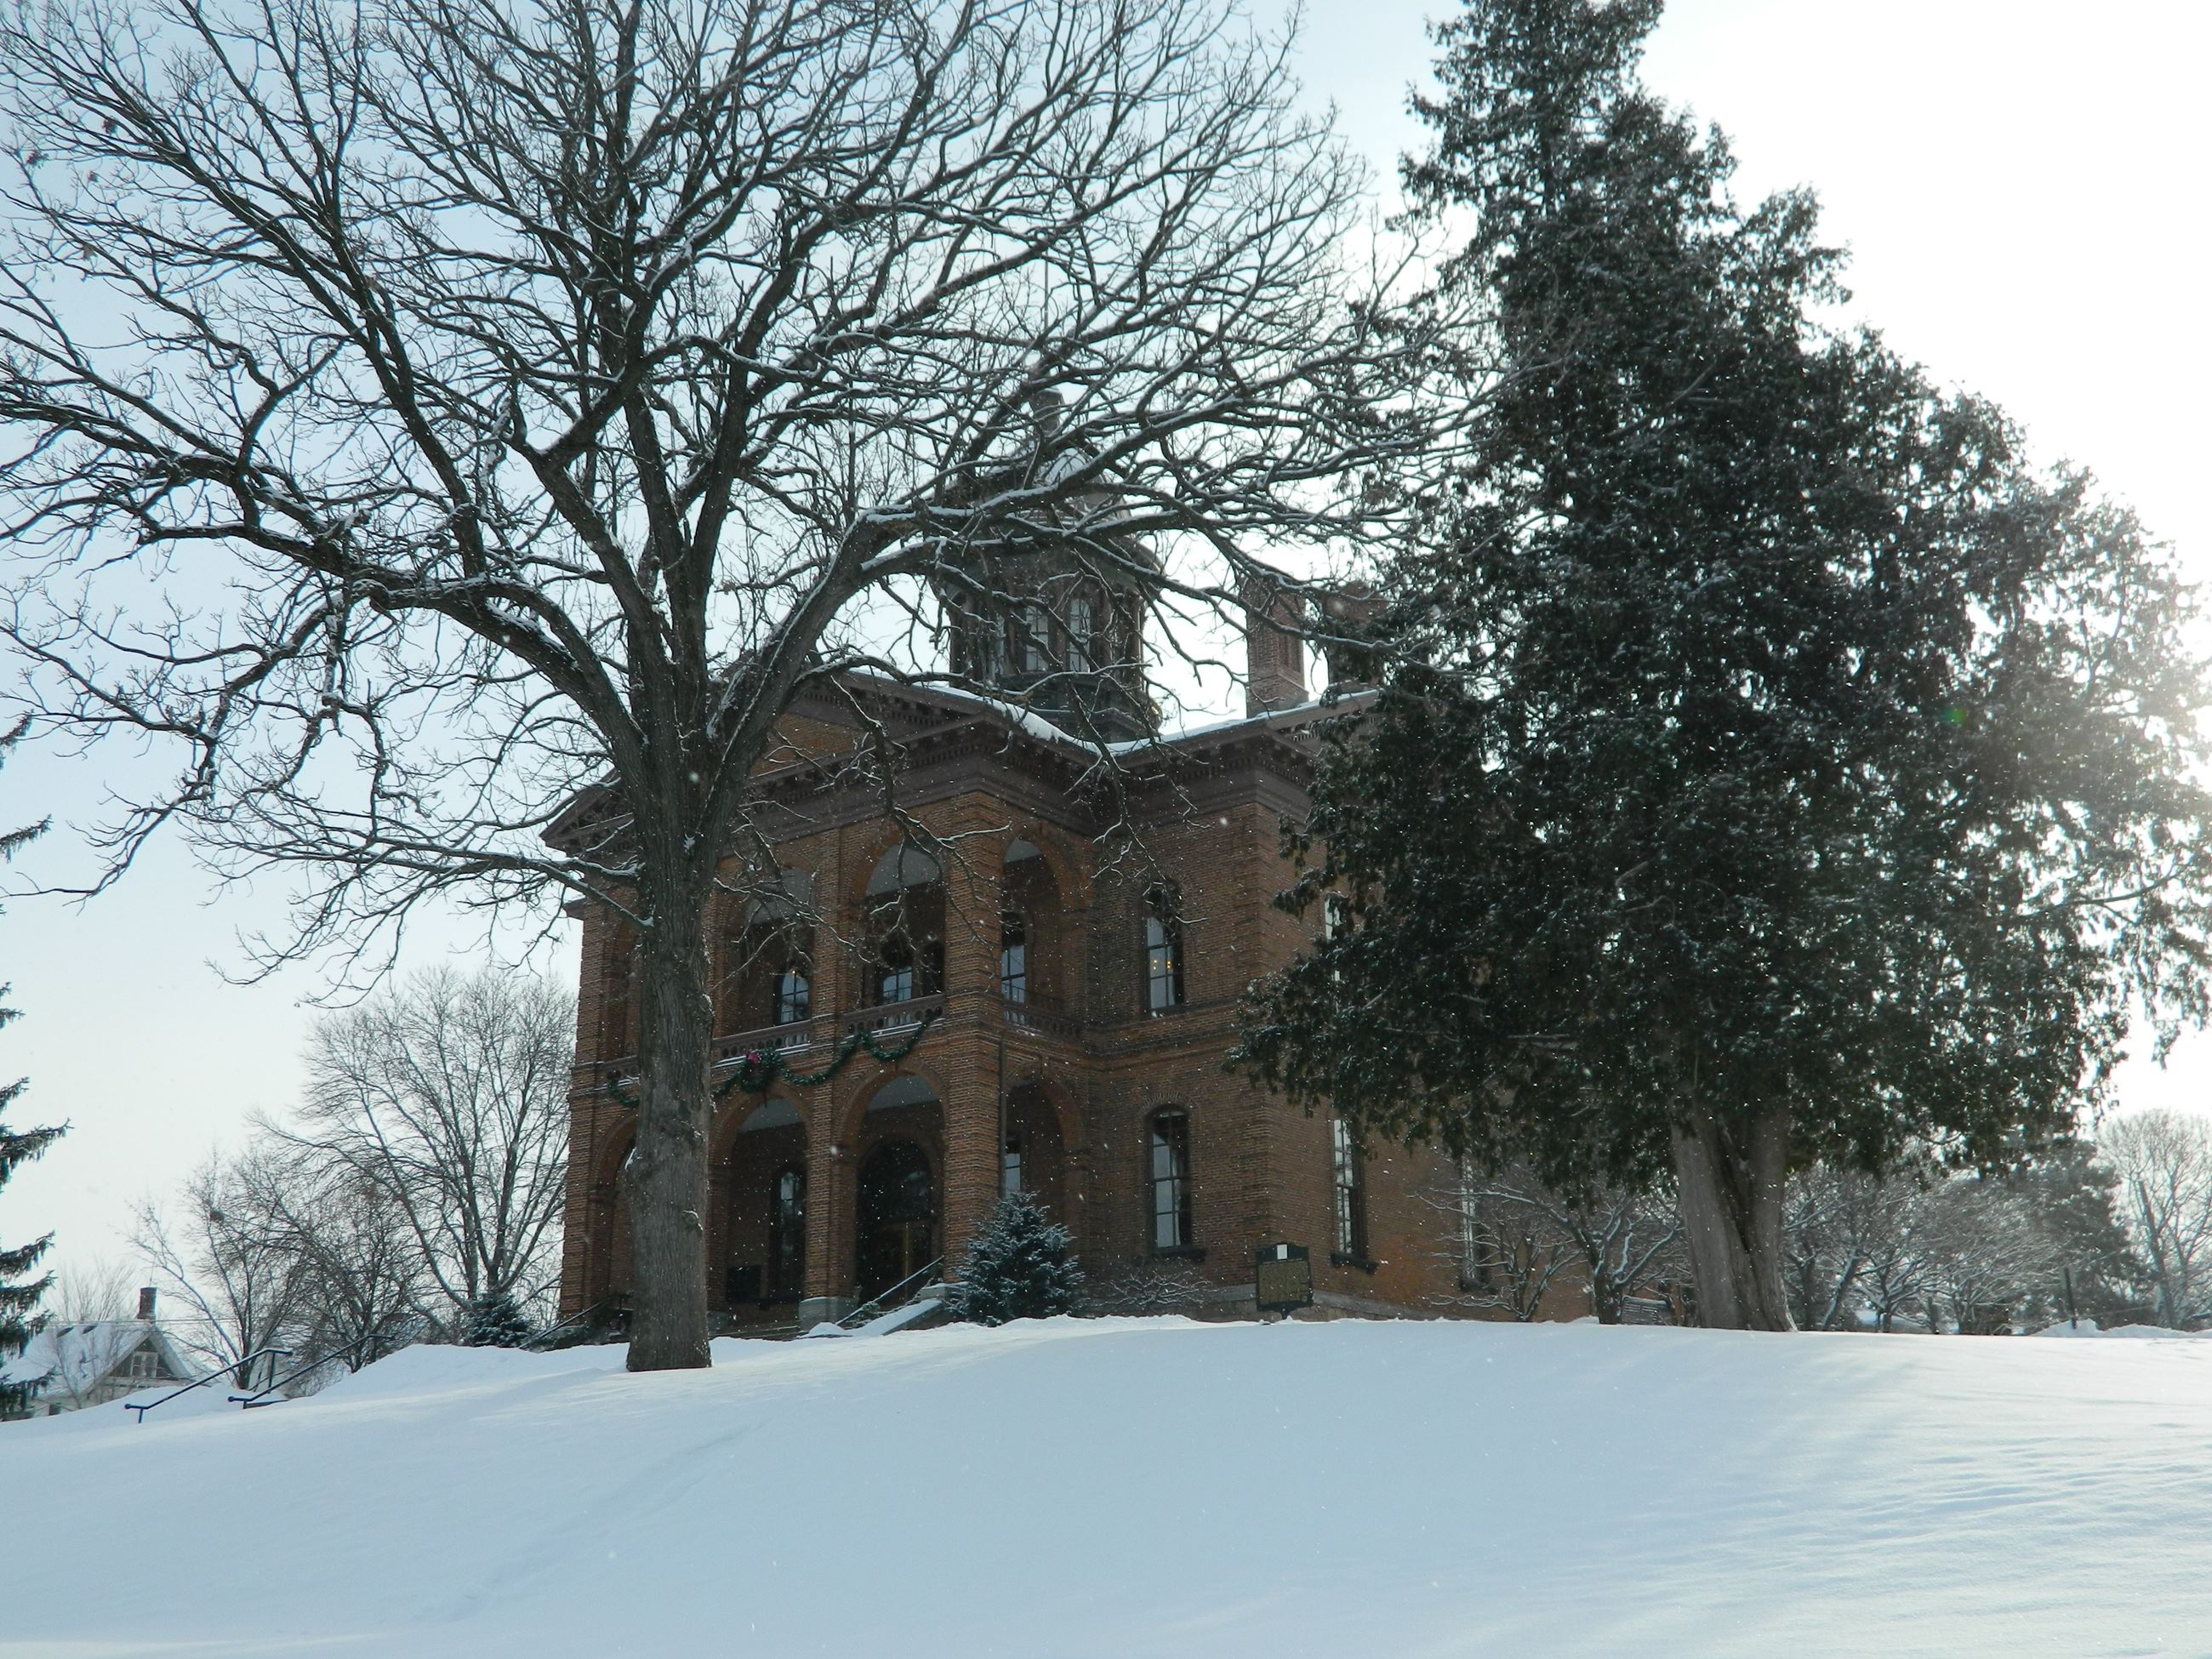 Looking up at the Historic Courthouse from the northeast corner of the grounds. Snow is on the ground. The building is seen through the branches of a leafless oak tree and a pine tree is on the right